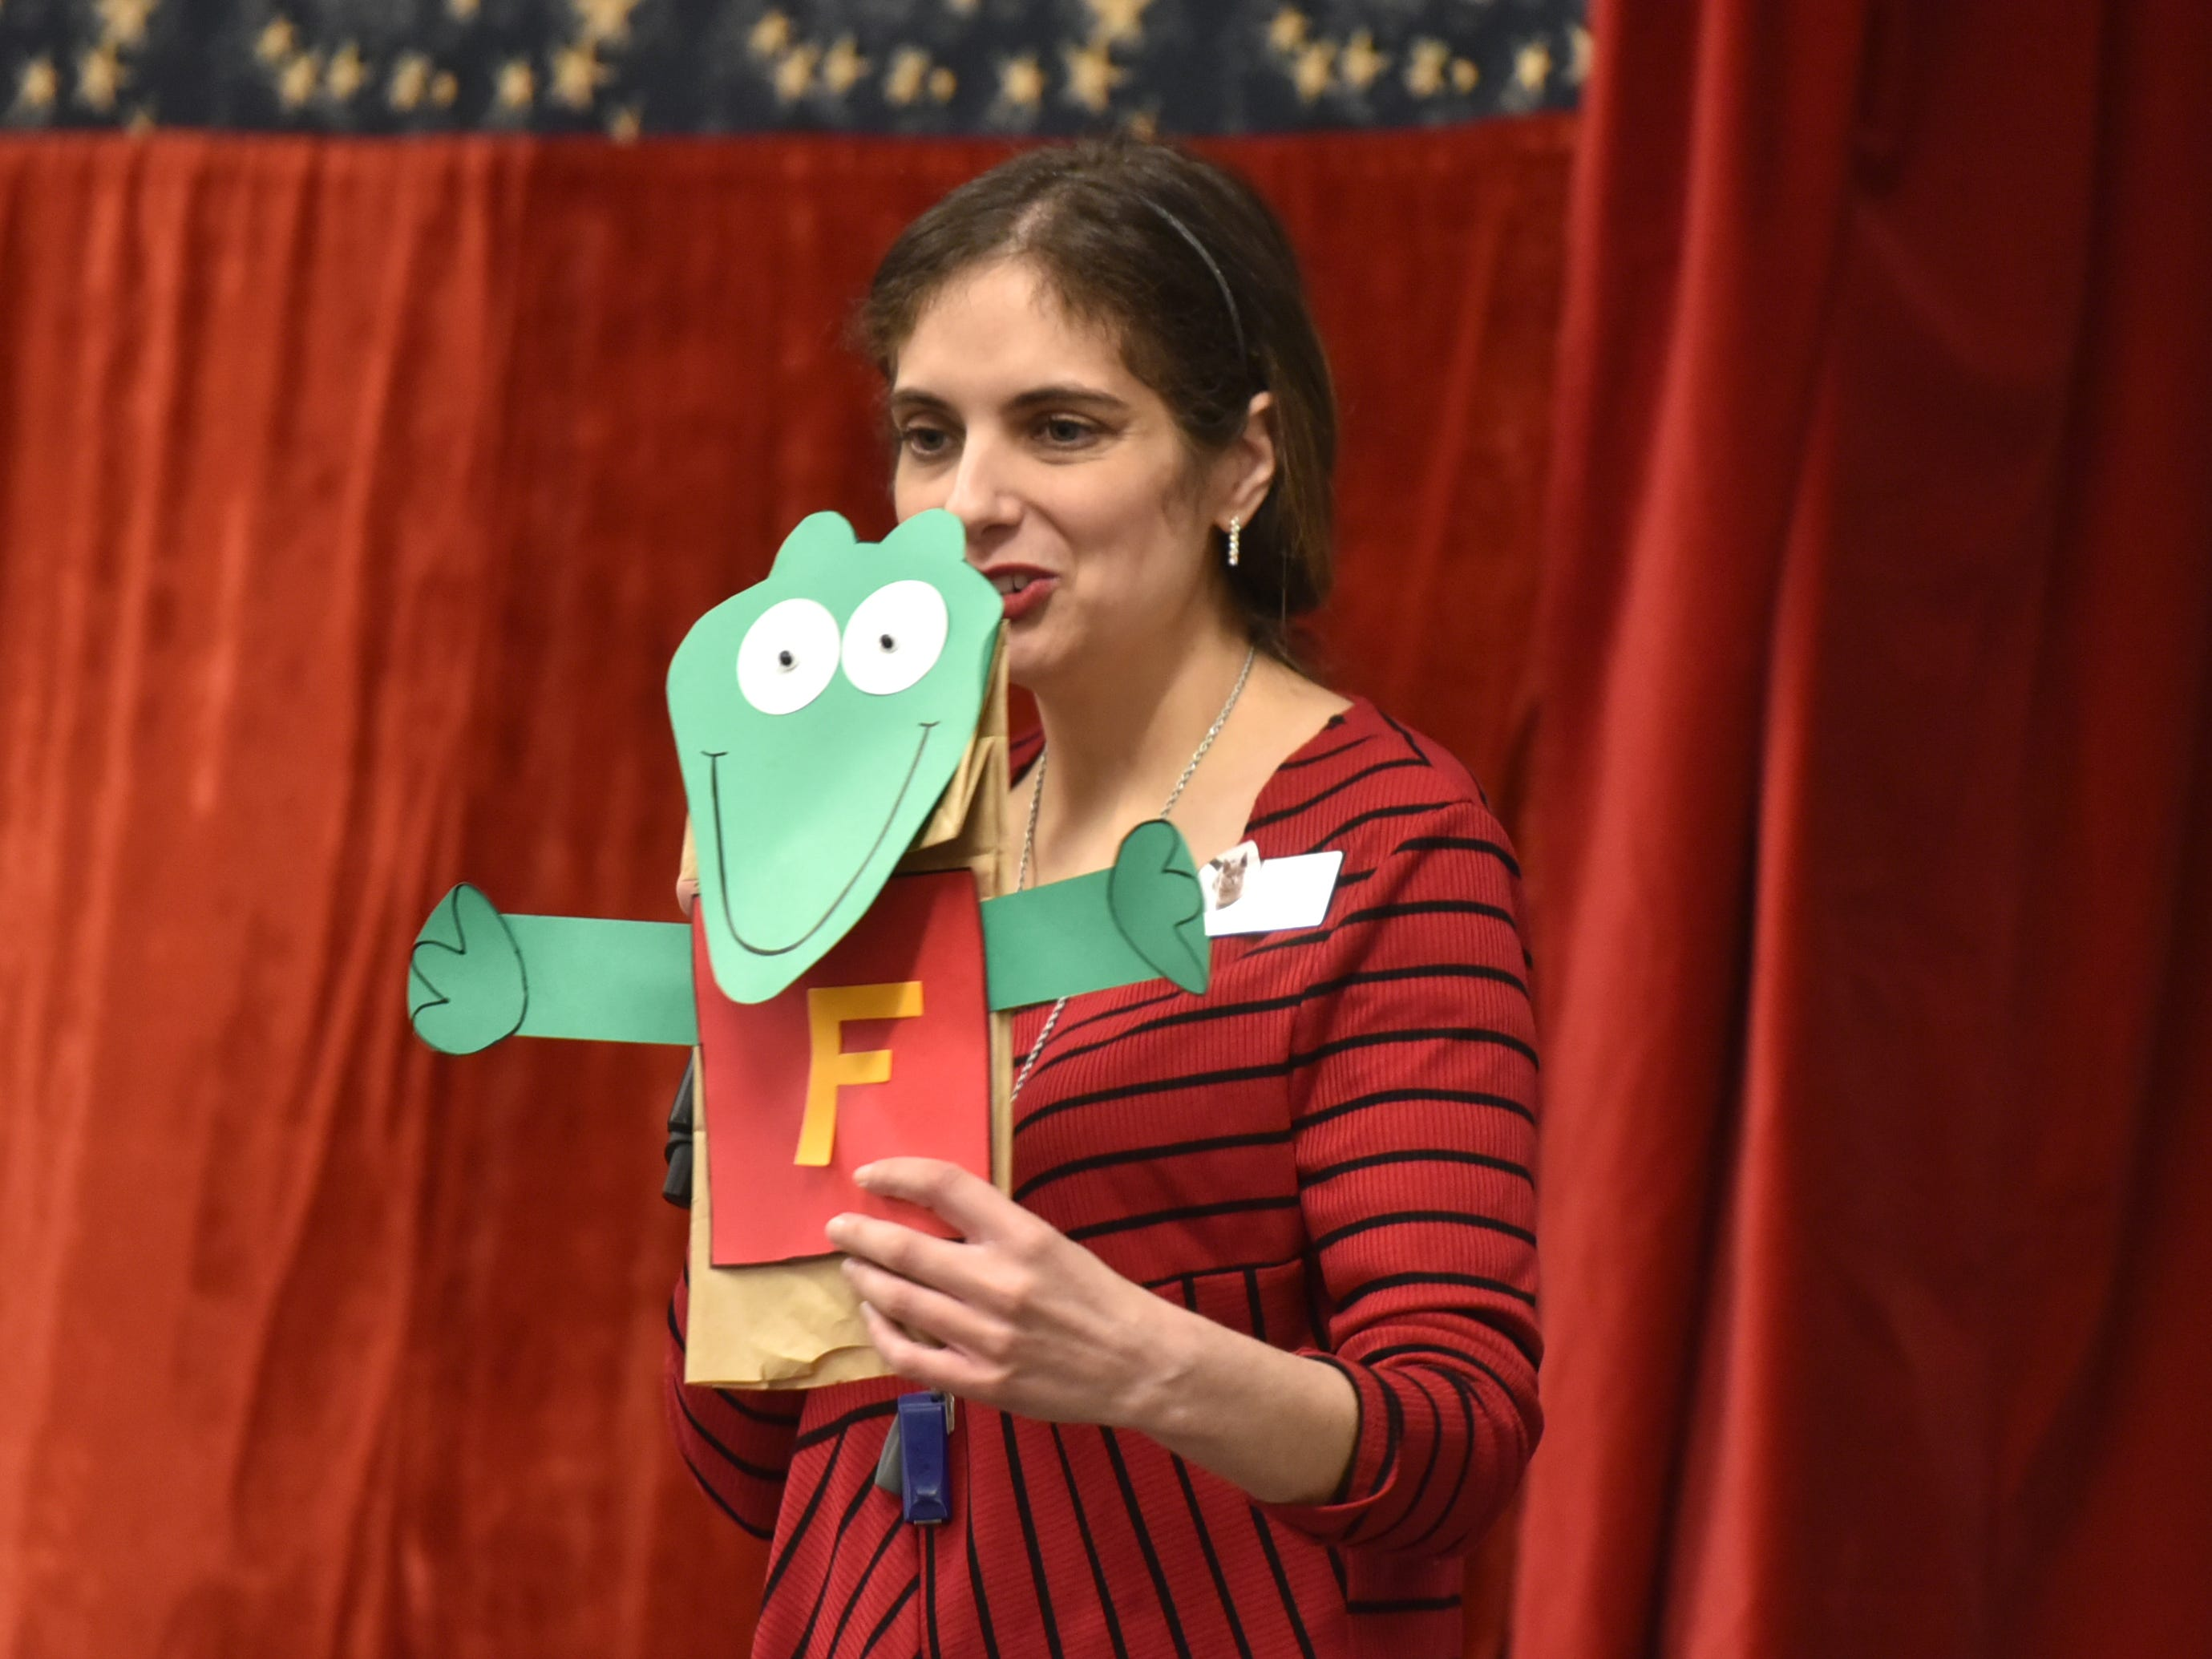 Farmington Hills Librarian Jennifer Harper shows off the paper bag puppet kits the library will give away to attendees of the April 2 Amazing Clark puppet show.